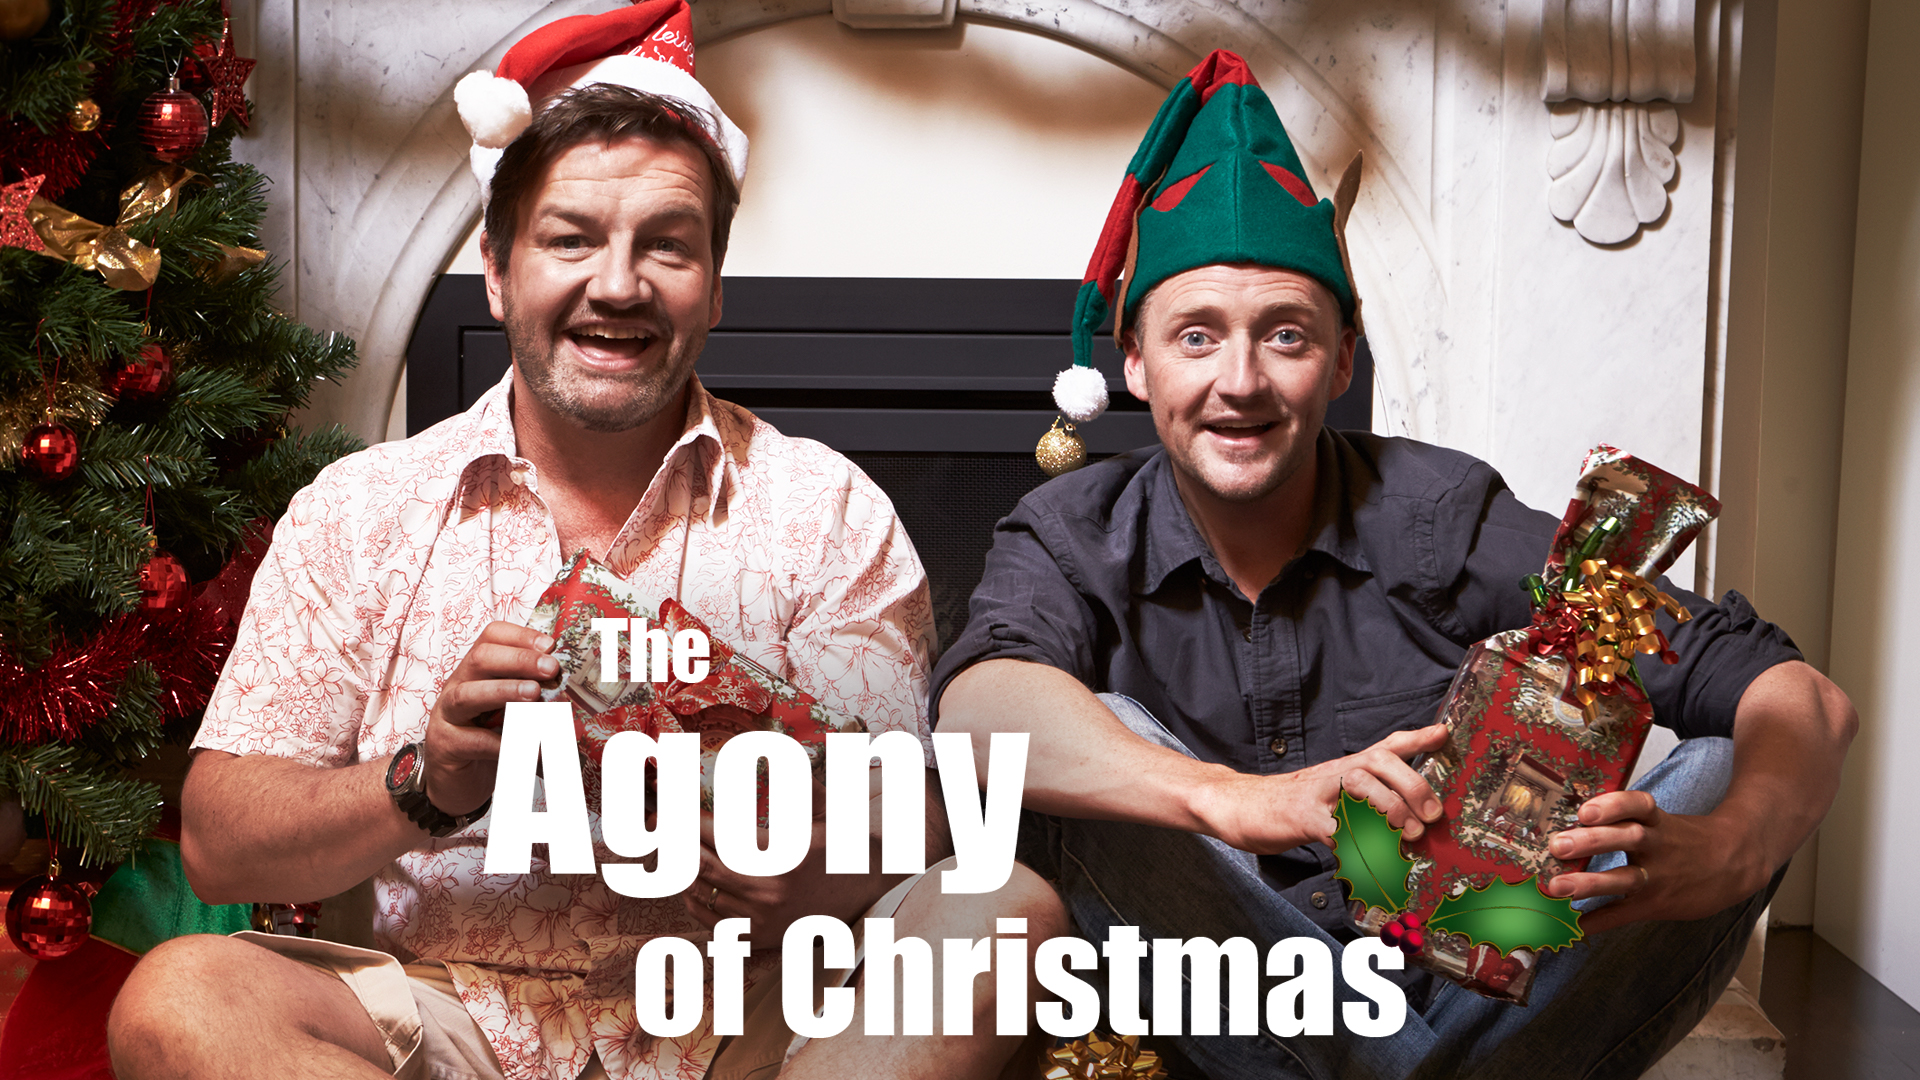 The Agony of Christmas | ABC Content Sales